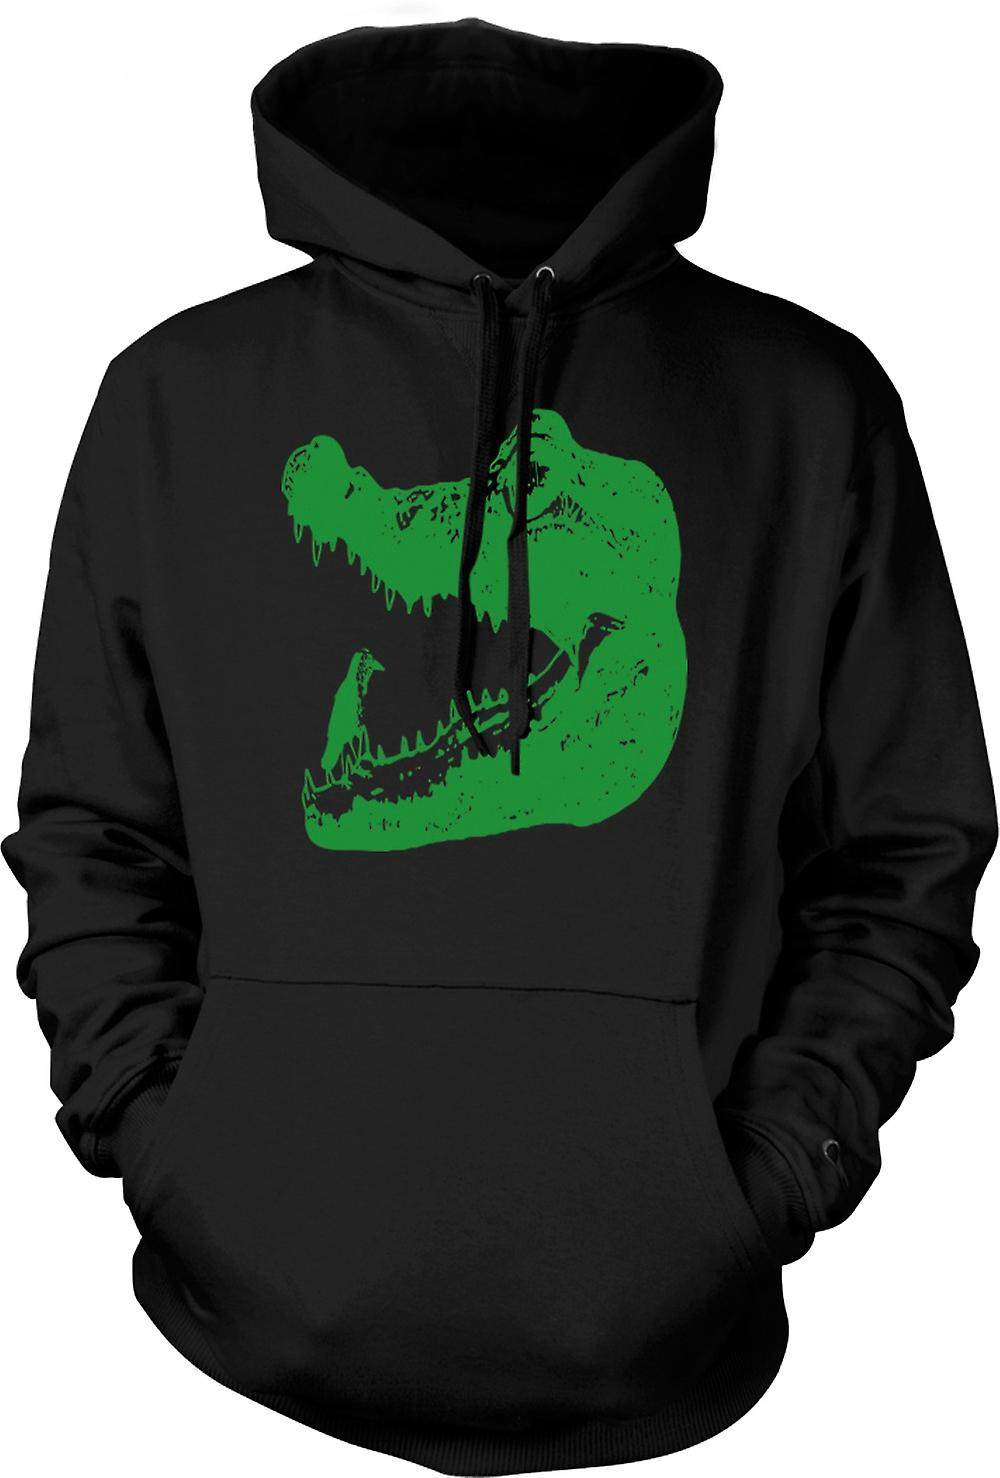 Kids Hoodie - Cool Aligator Crocodile - Cool Graphic Design